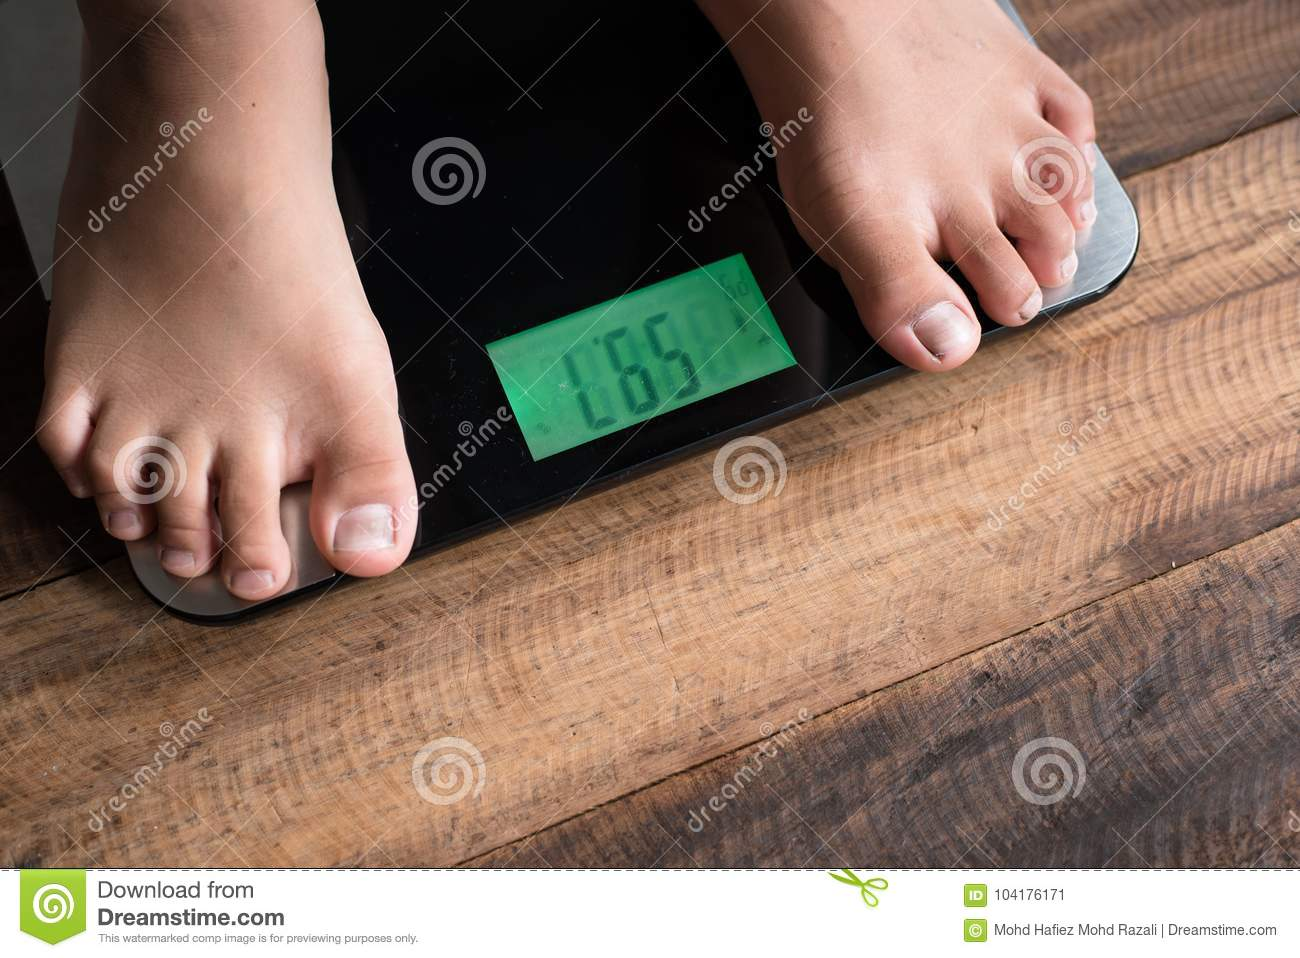 asian boy feet on a weighing scale stock image - image of concept